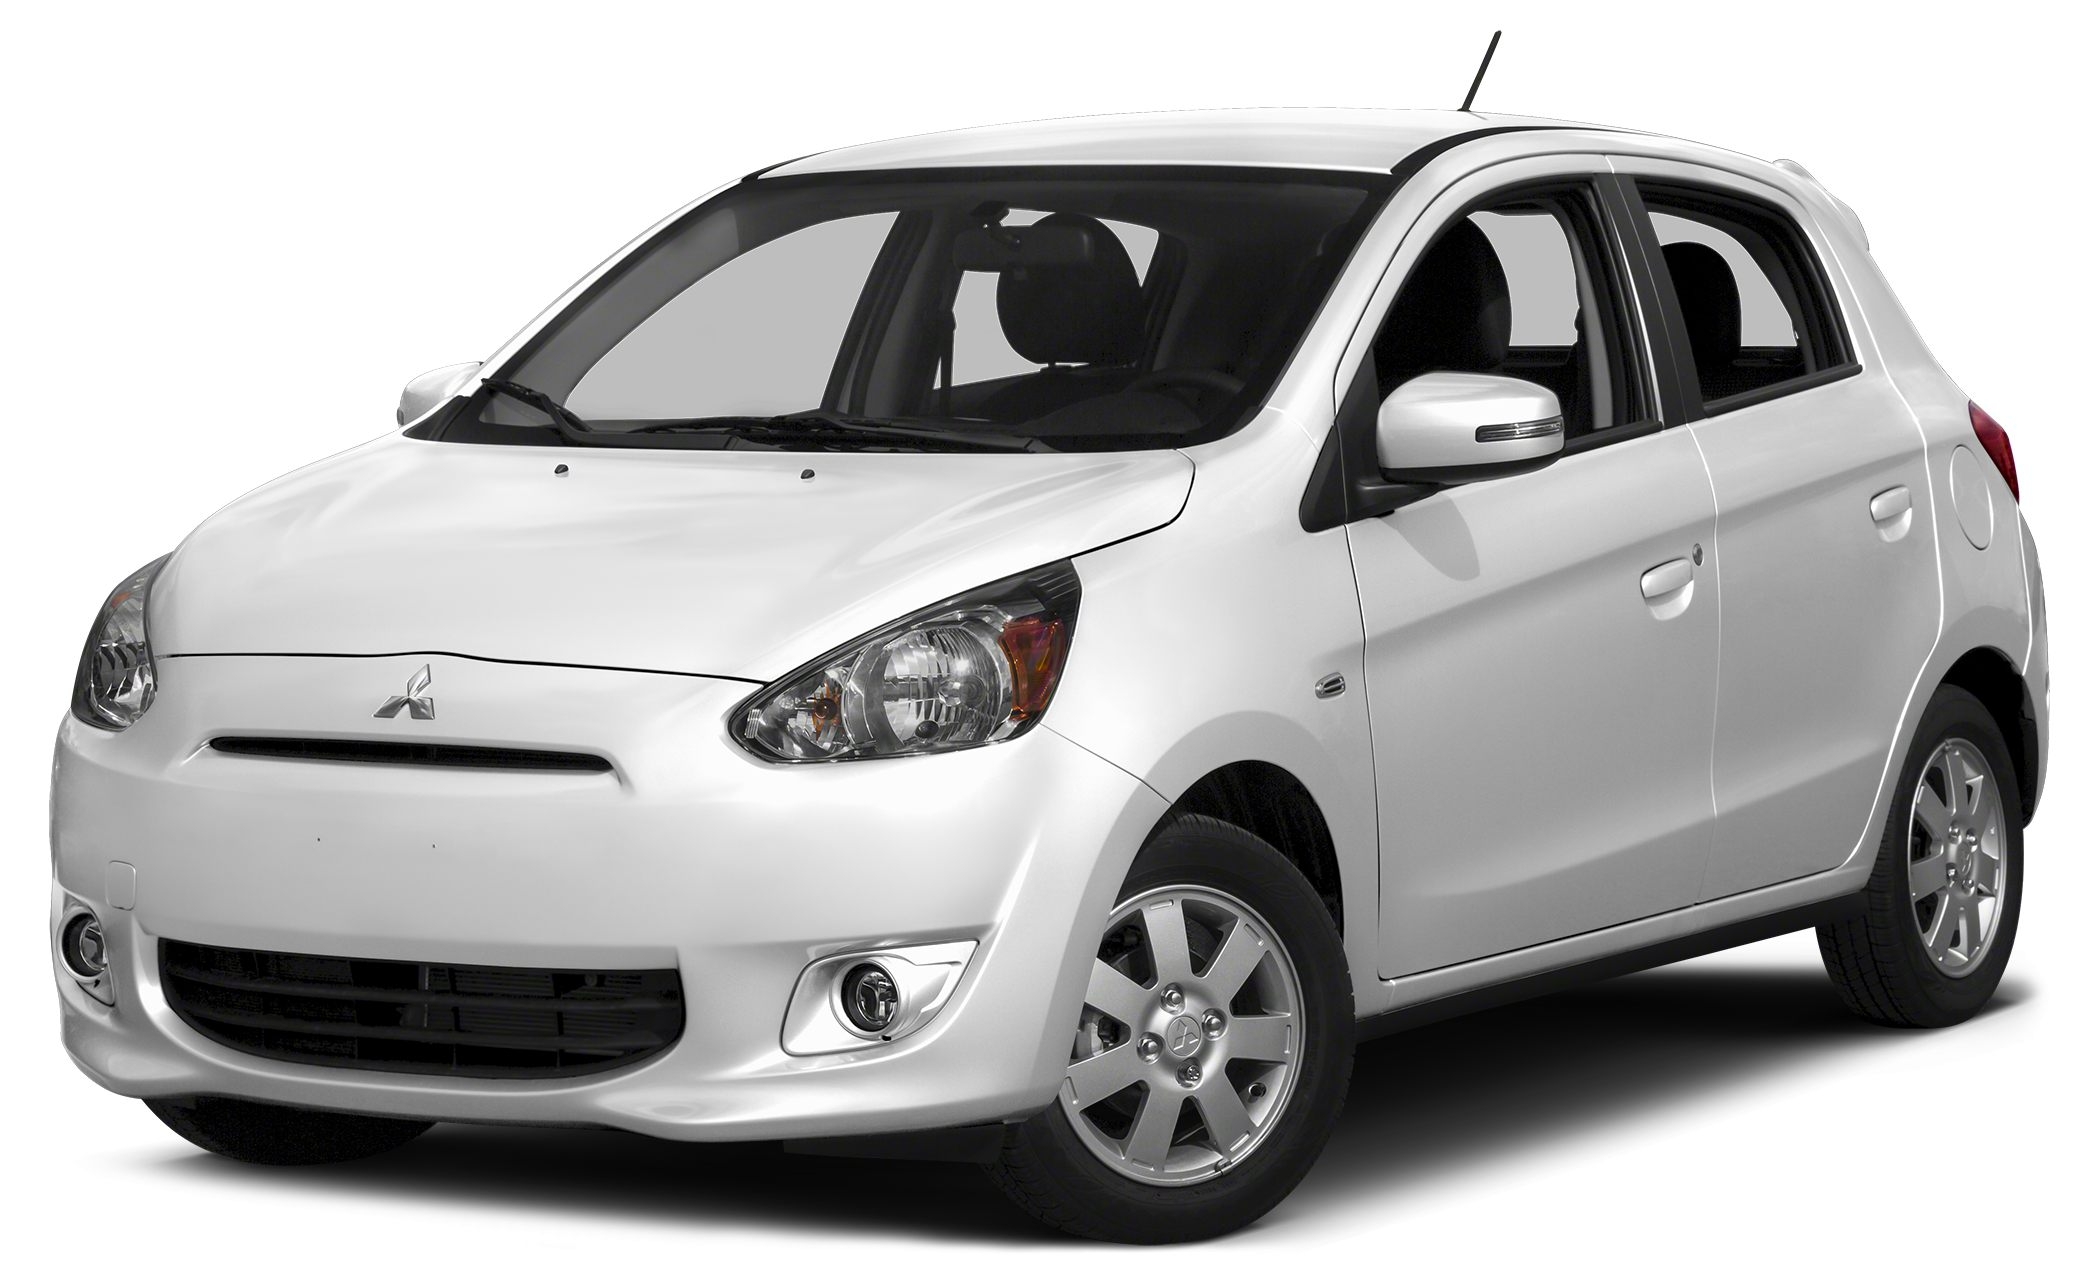 2015 Mitsubishi Mirage DE Check out this great low mileage vehicle This vehicle glistens in the c